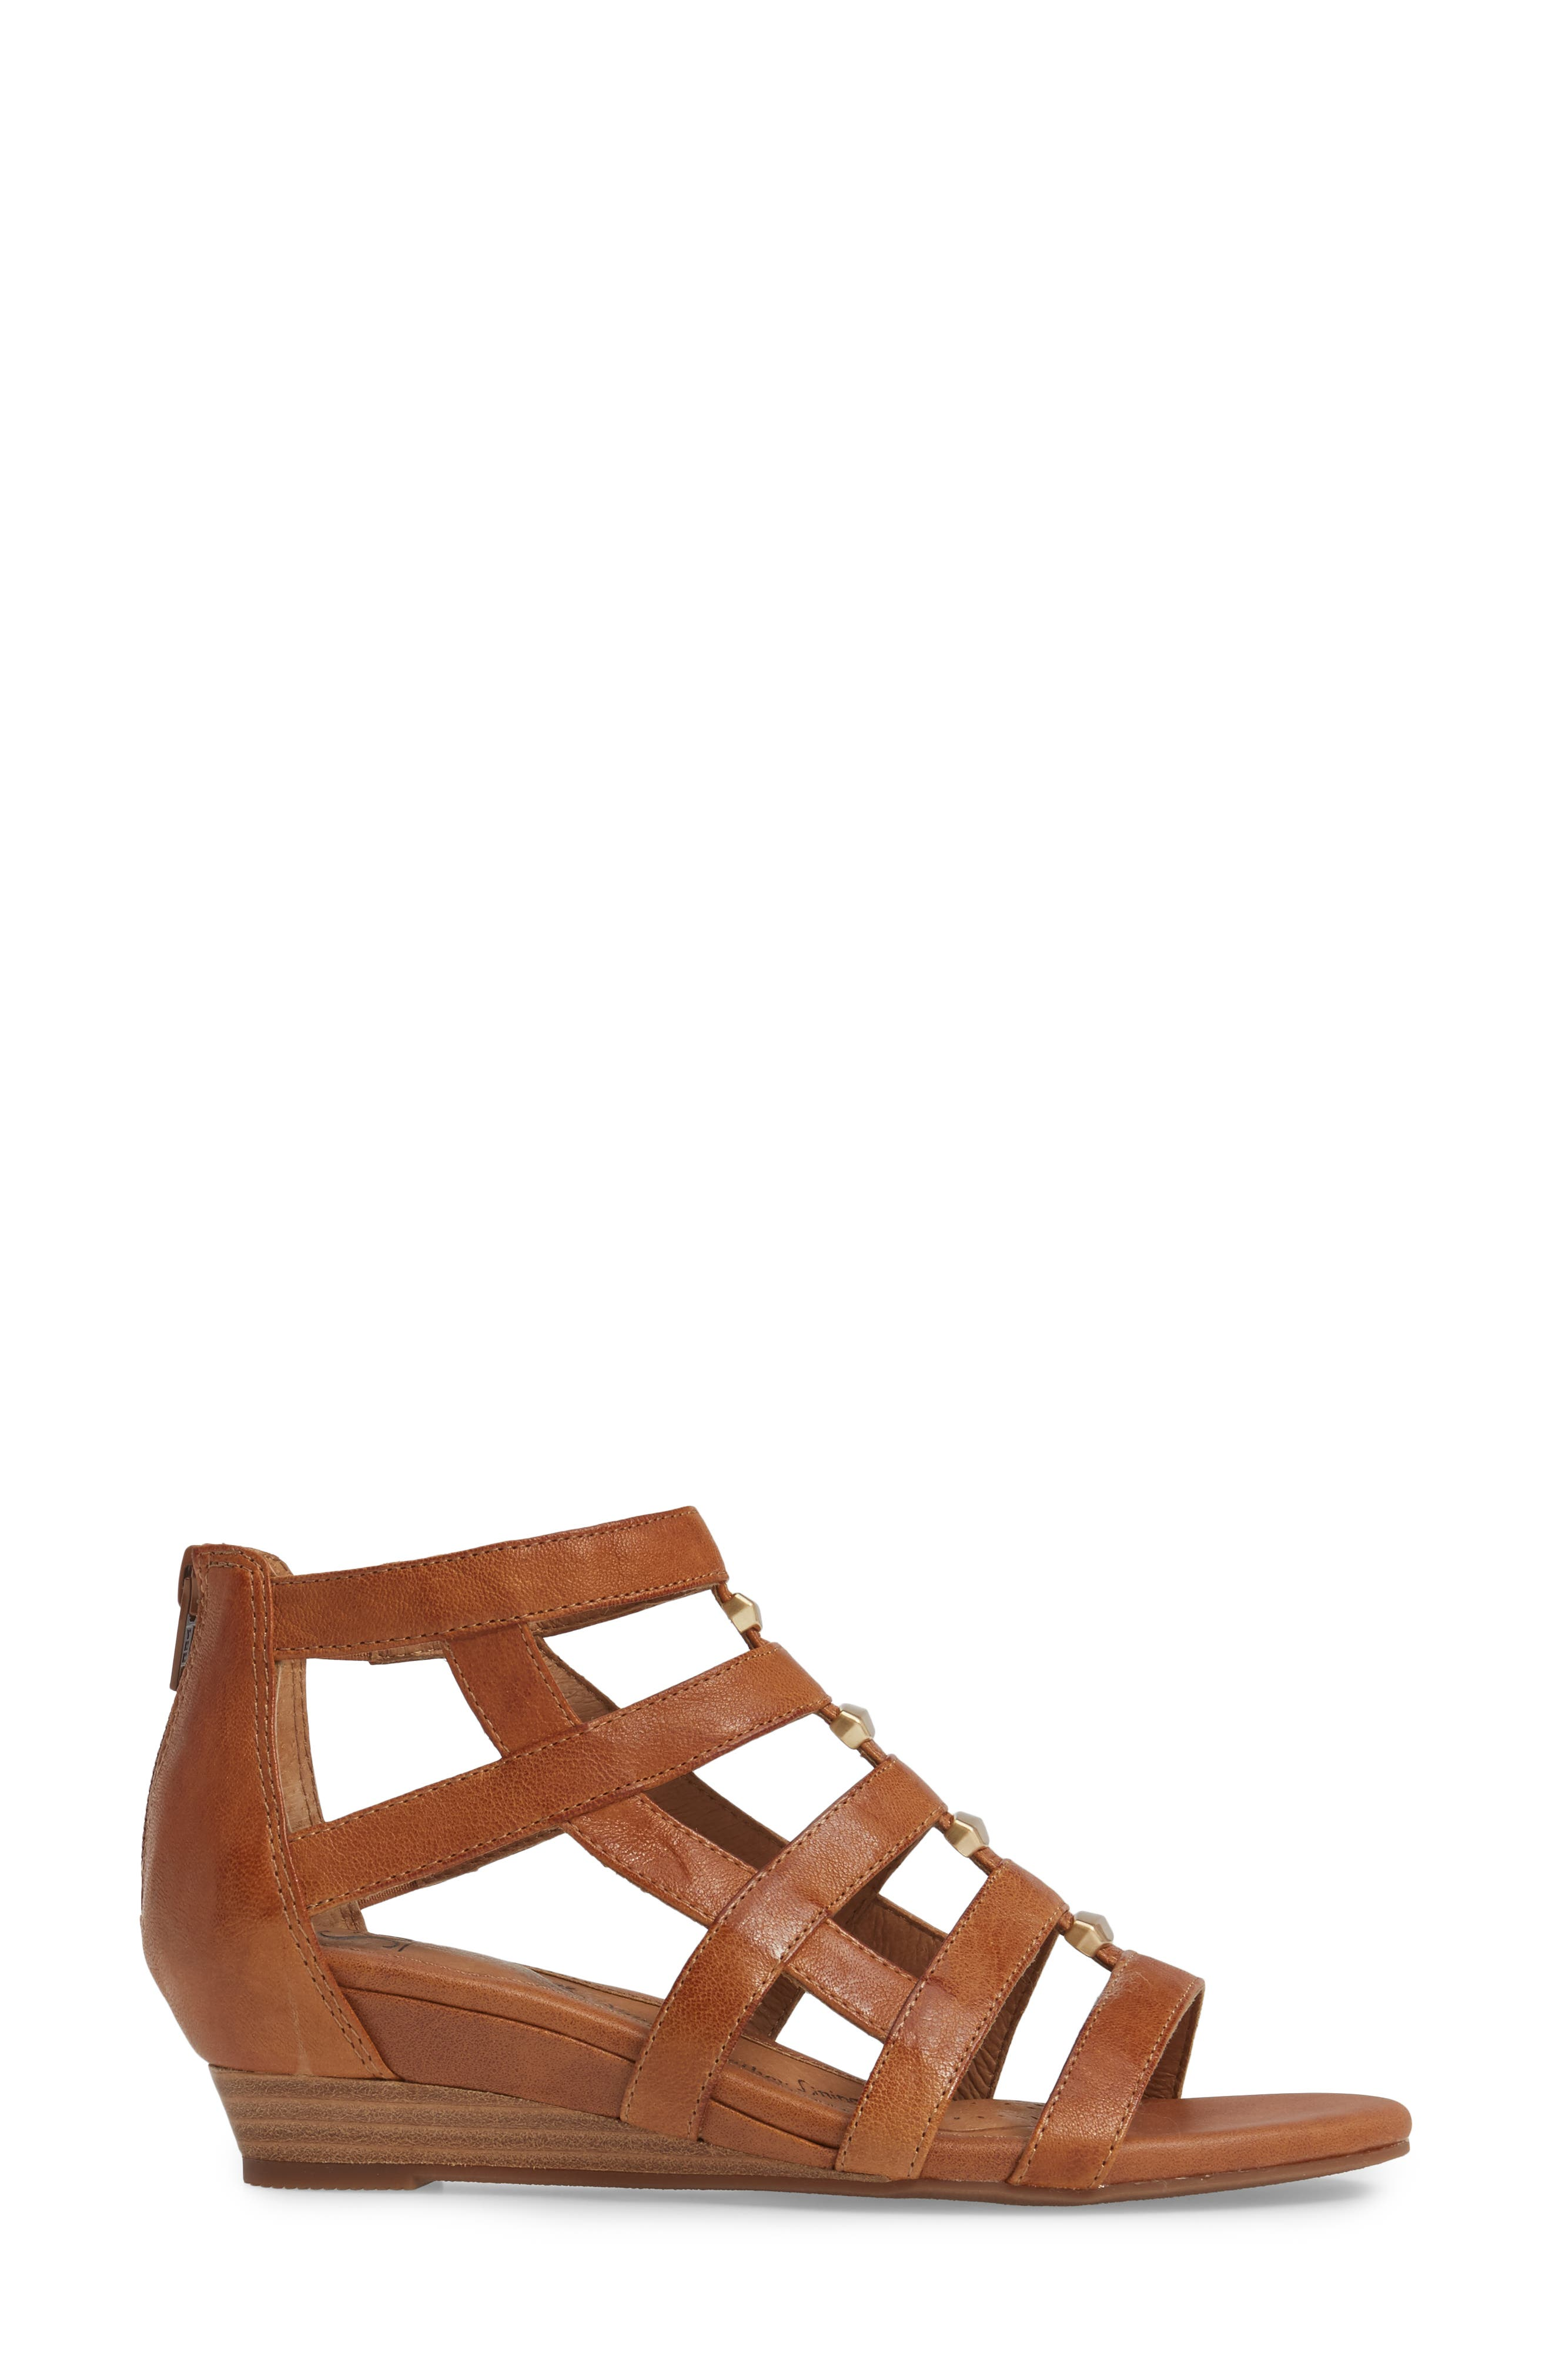 ,                             Rio Gladiator Wedge Sandal,                             Alternate thumbnail 3, color,                             LUGGAGE LEATHER